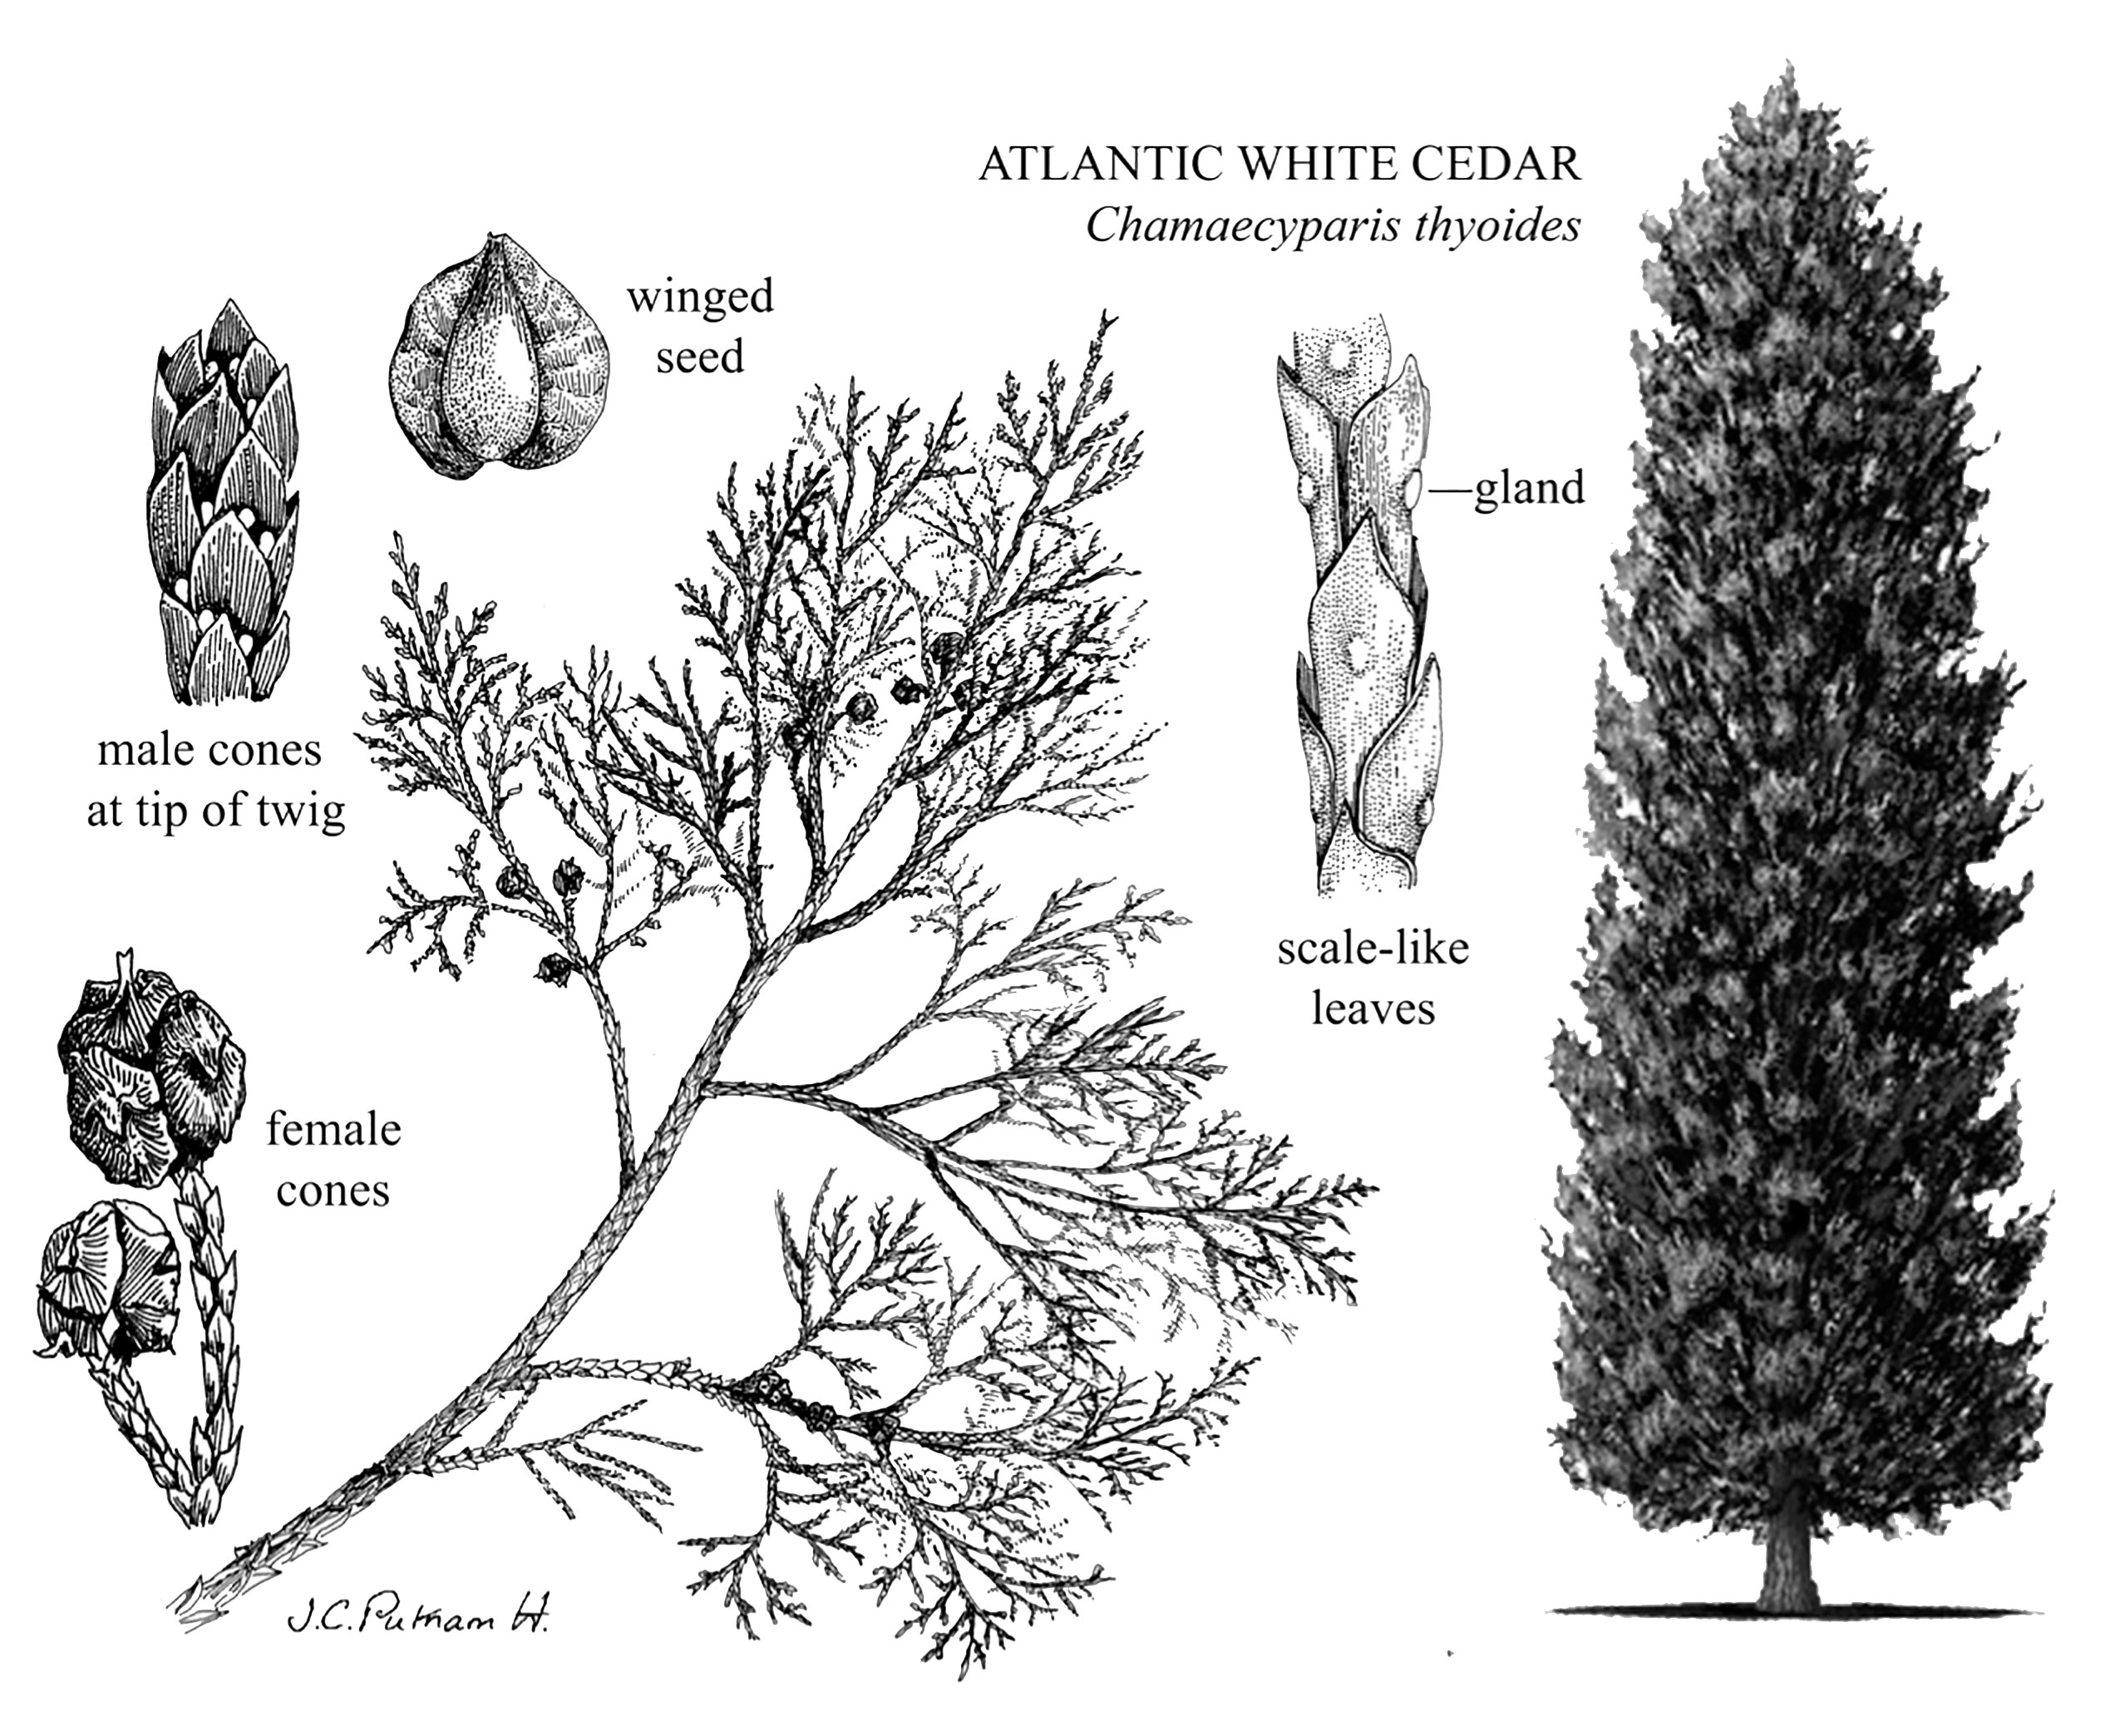 Atlantic White Cedar Species Drawing